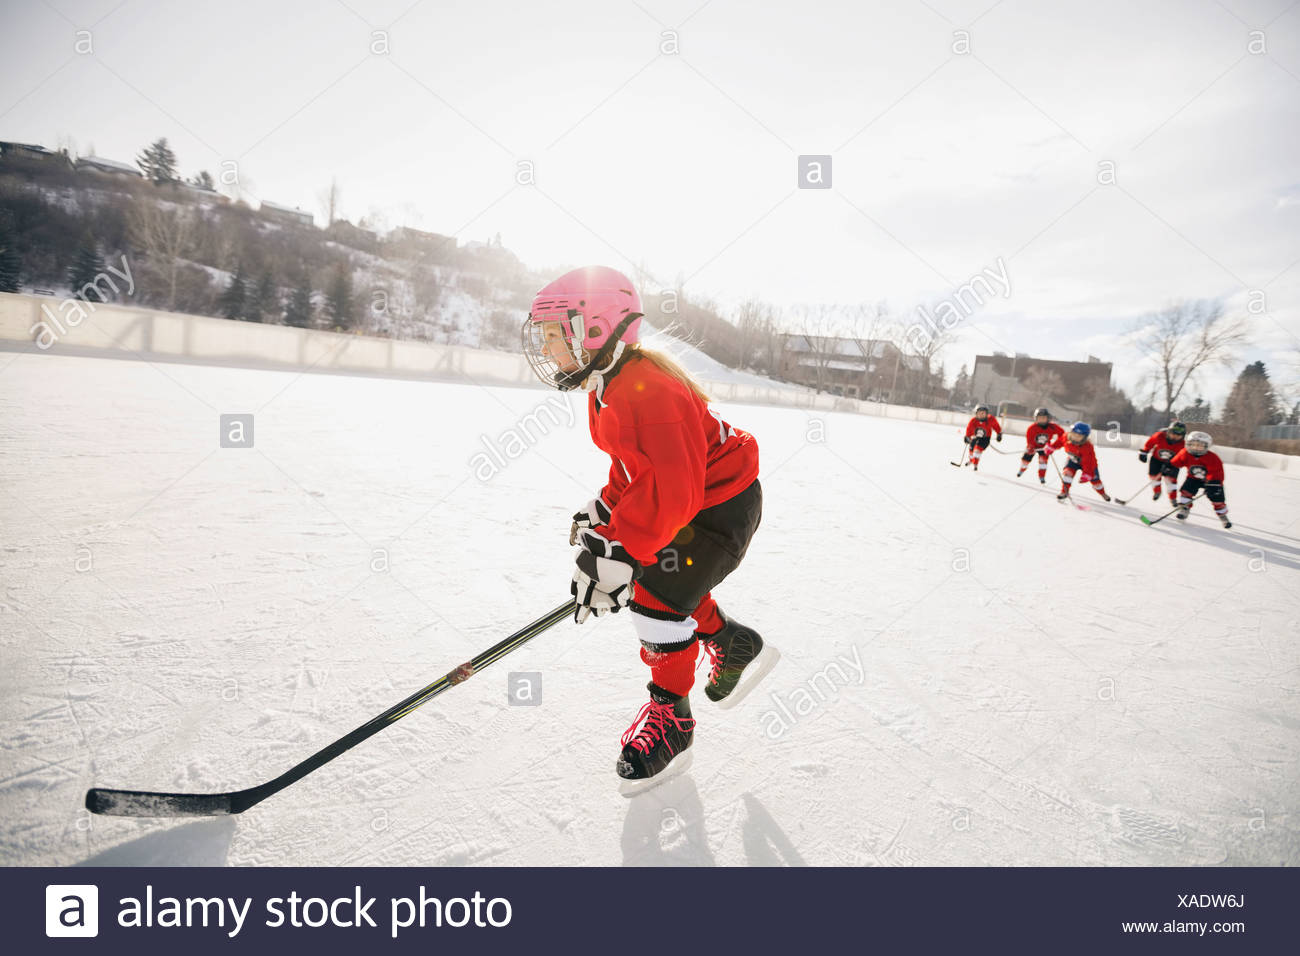 Girl playing ice hockey on rink - Stock Image